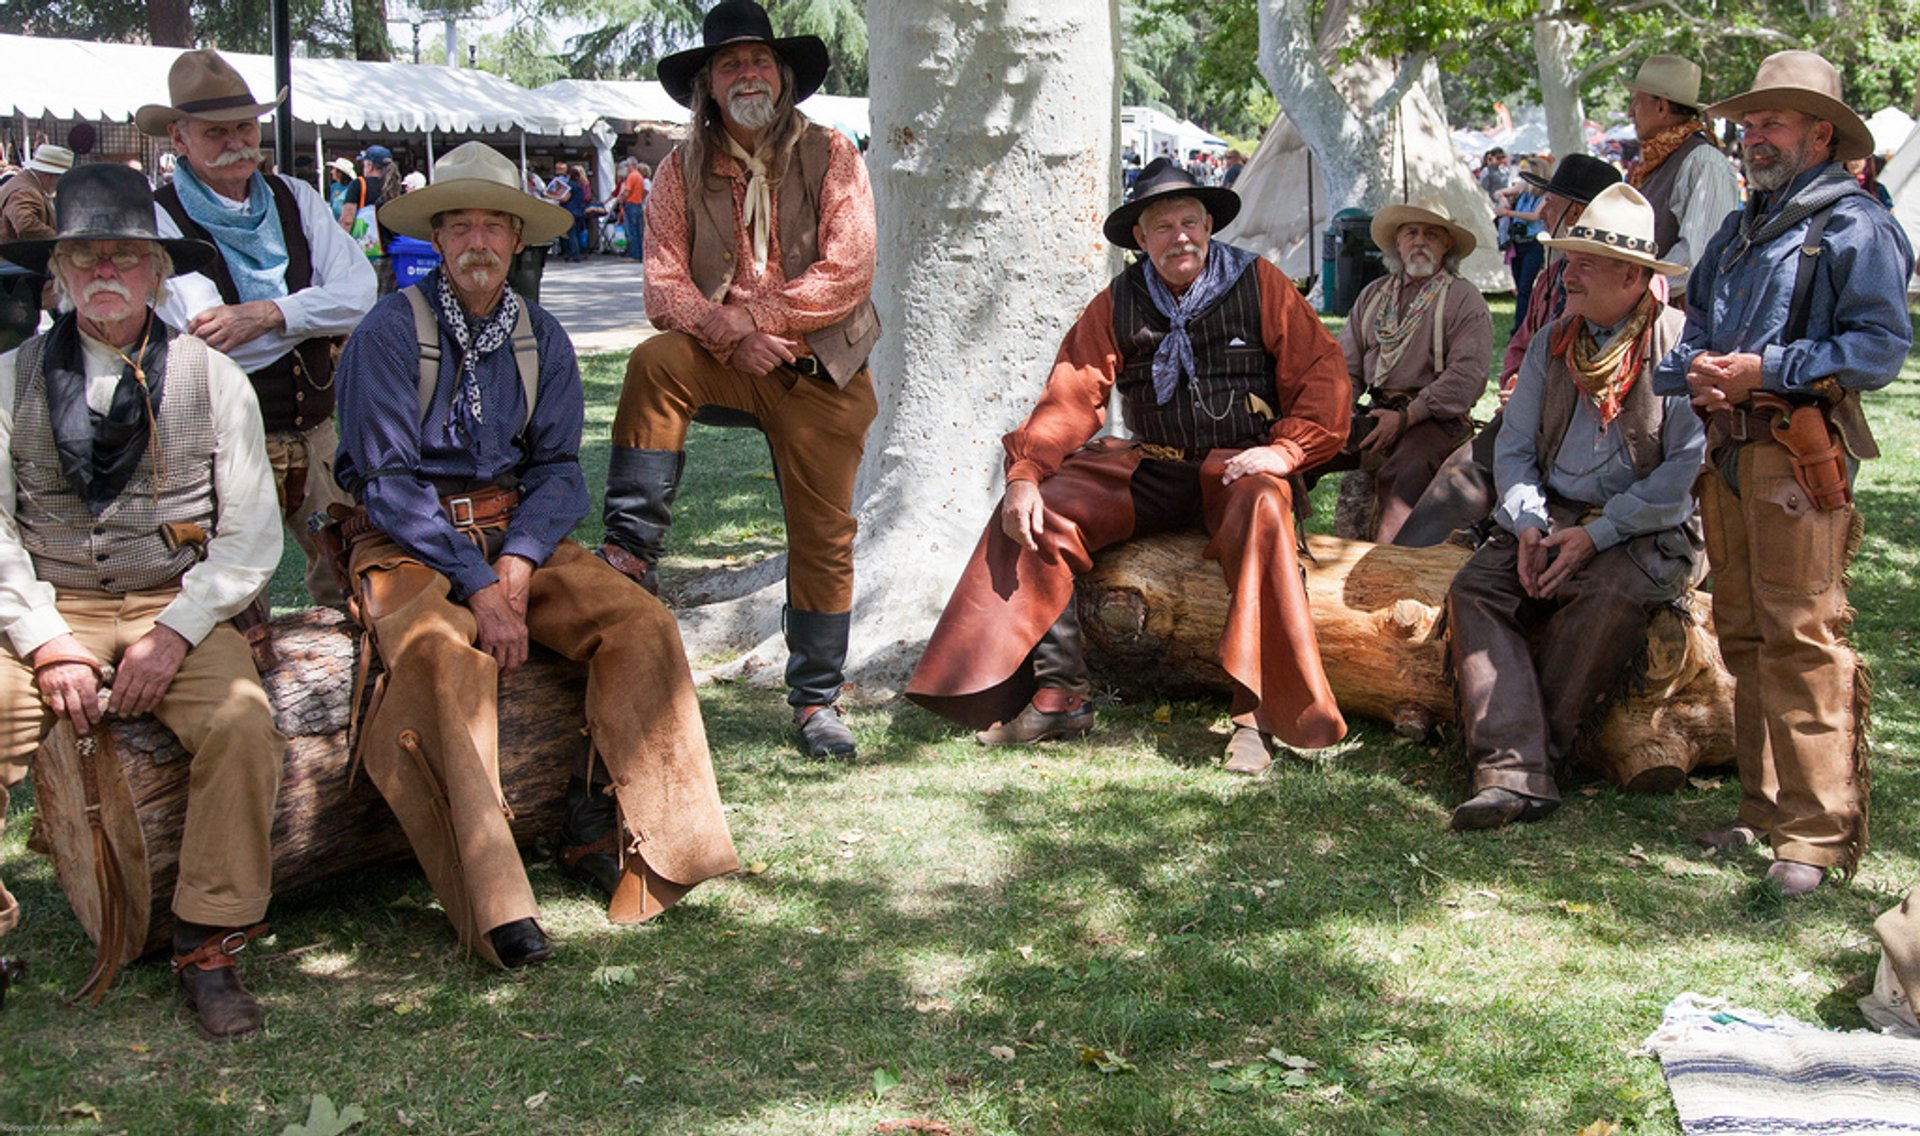 Santa Clarita Cowboy Festival in Los Angeles 2019 - Best Time